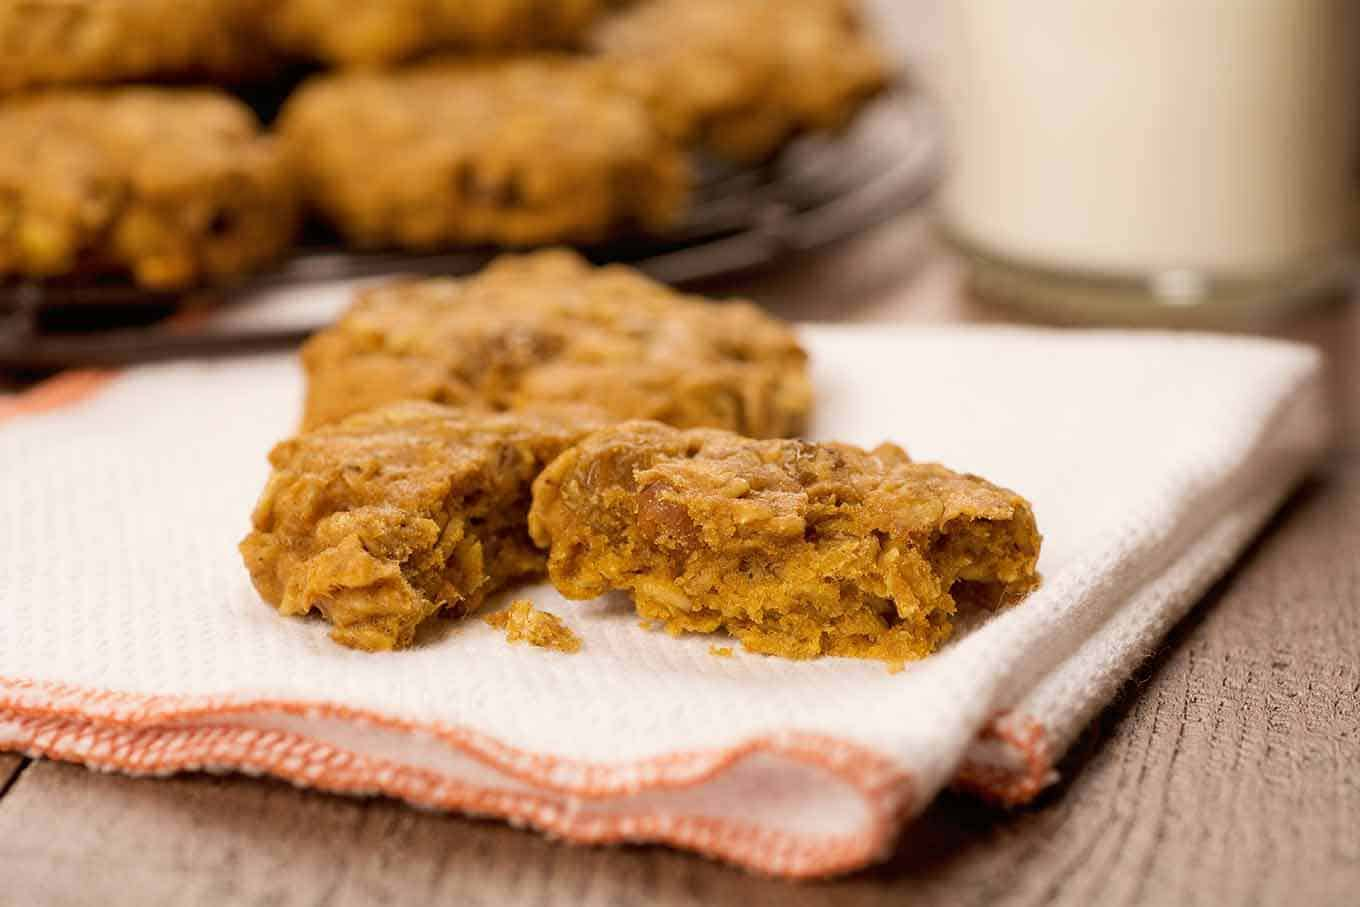 A pumpkin oatmeal cookie on a cloth napkin, broken in half with a glass of milk in the background.